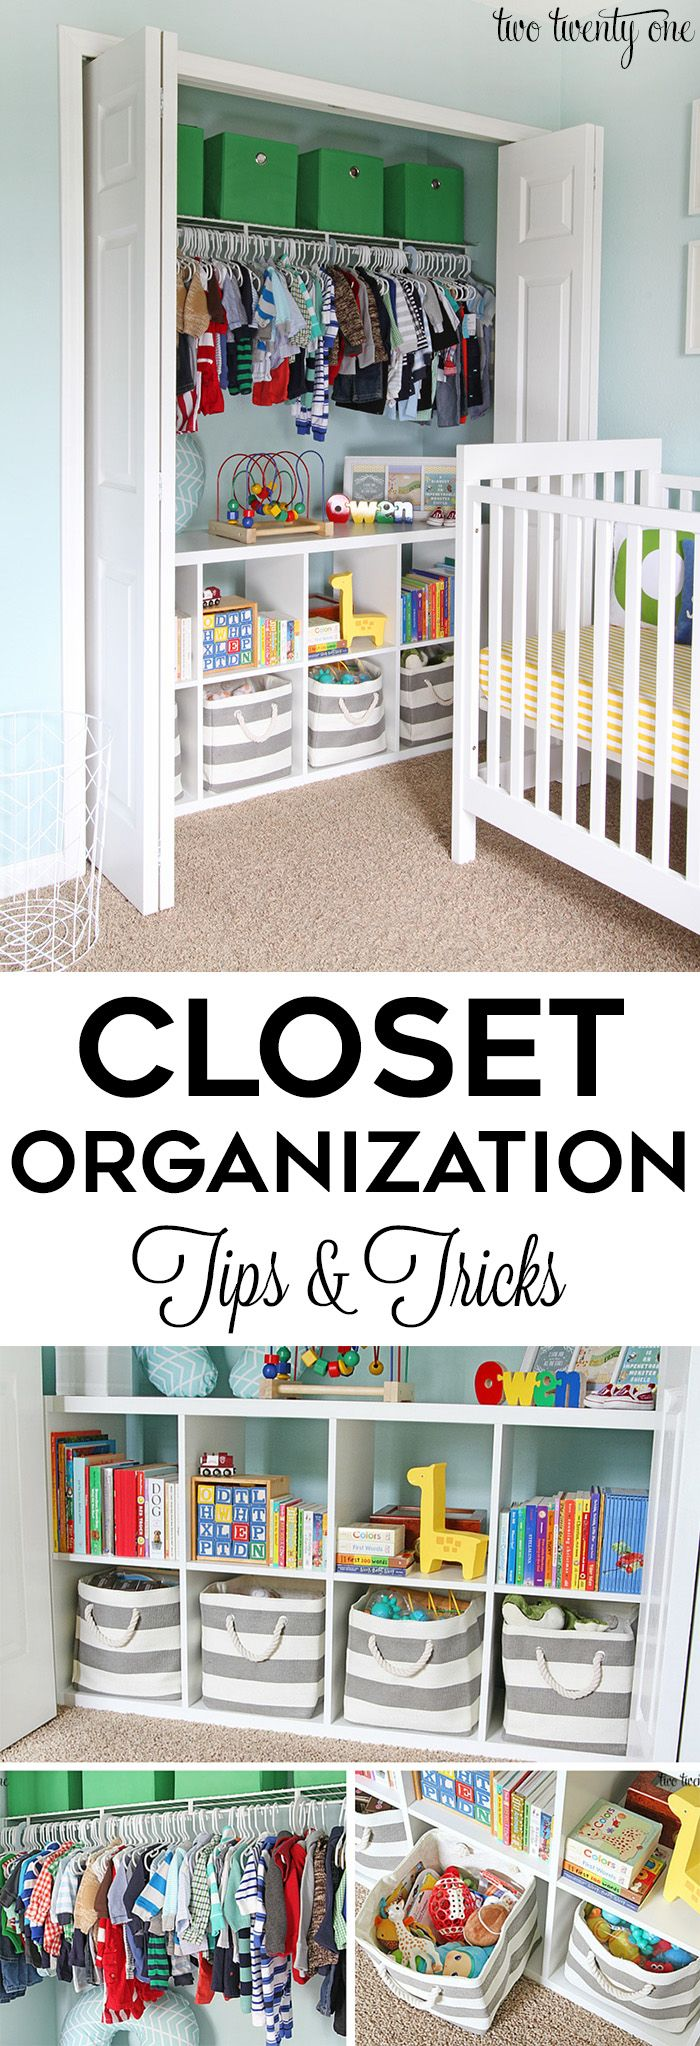 Small Nursery Closet Organization Ideas Part - 30: Closet Organization Tips And Tricks! GREAT Ideas For Home Organization!